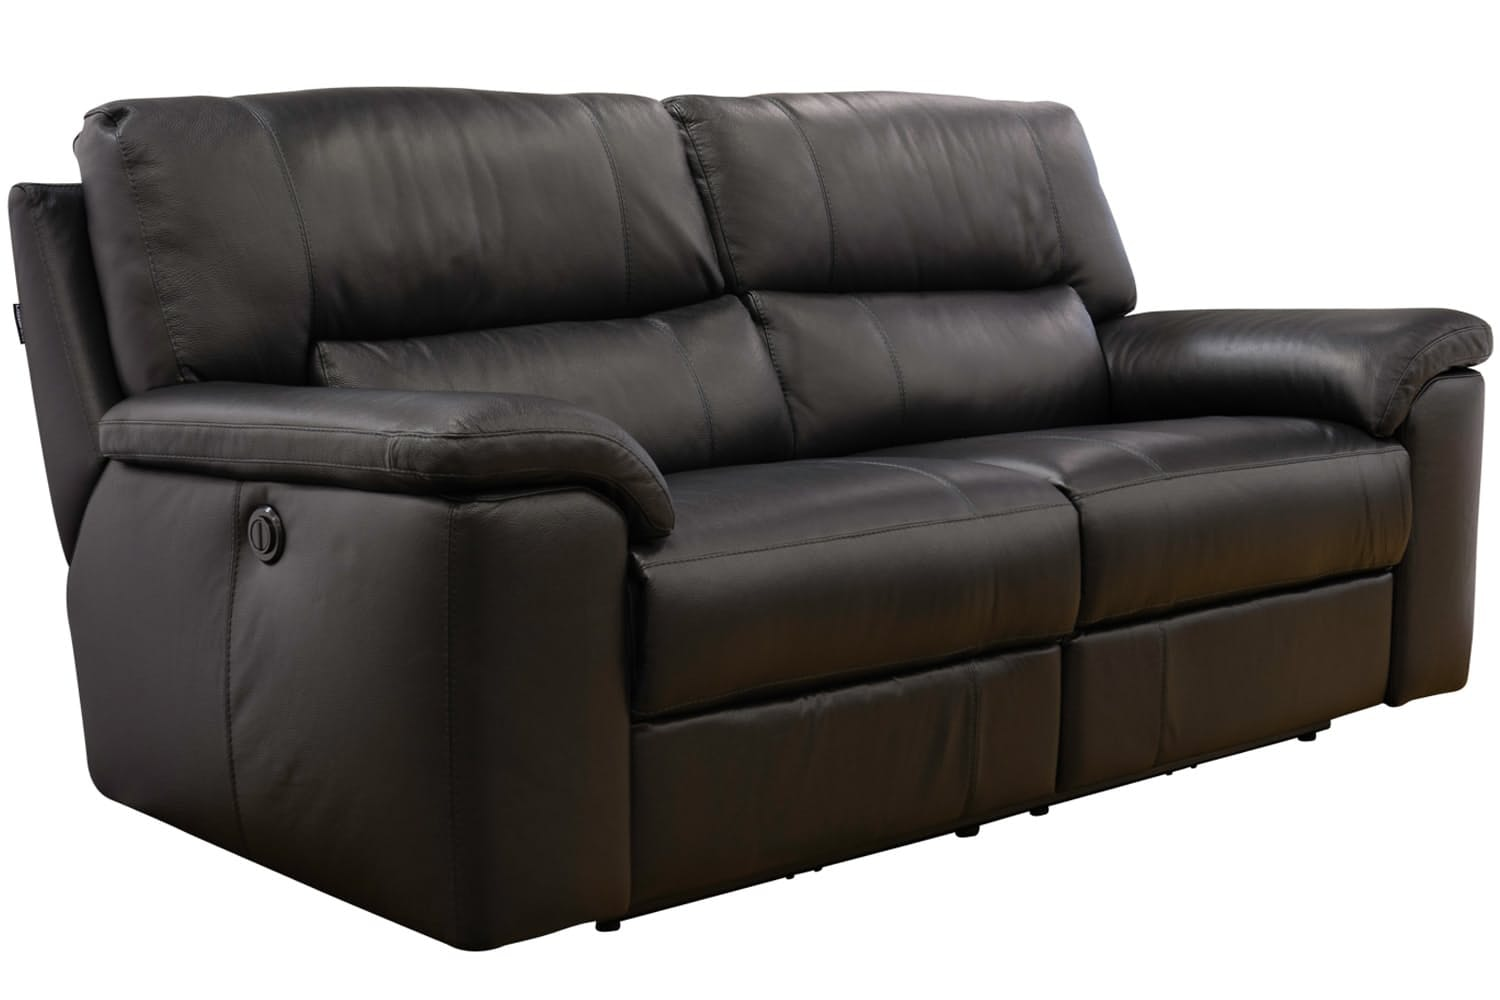 Iris 3 Seater Leather Sofa